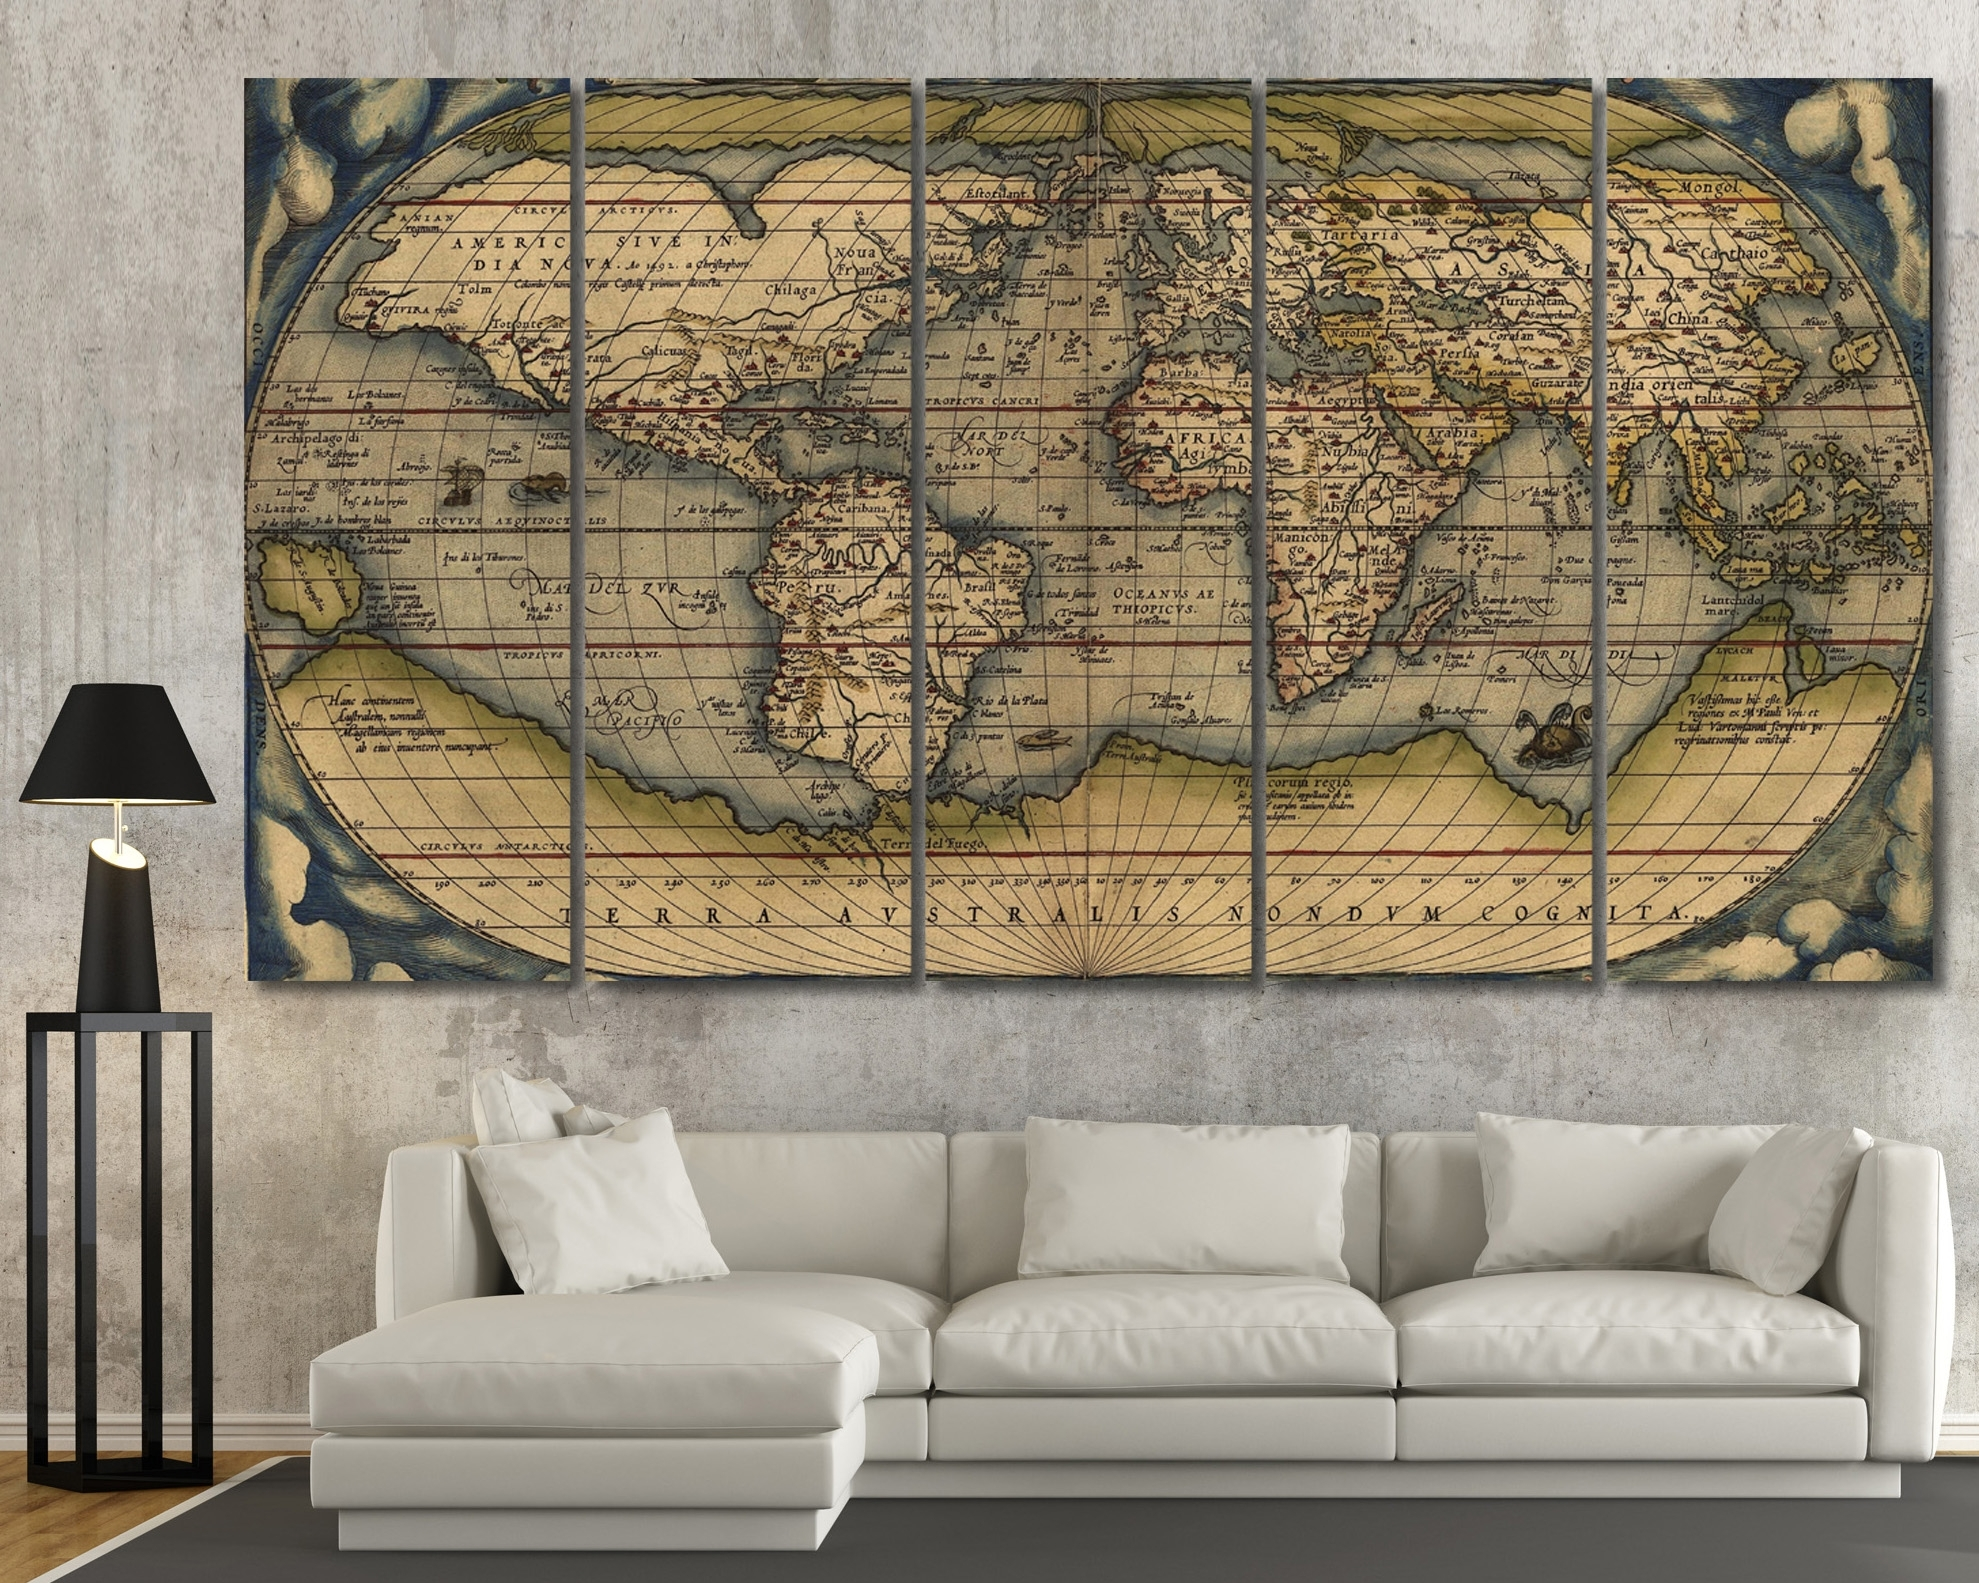 Large Vintage Wall Art Old World Map At Texelprintart With 2018 Maps Wall Art (View 1 of 20)